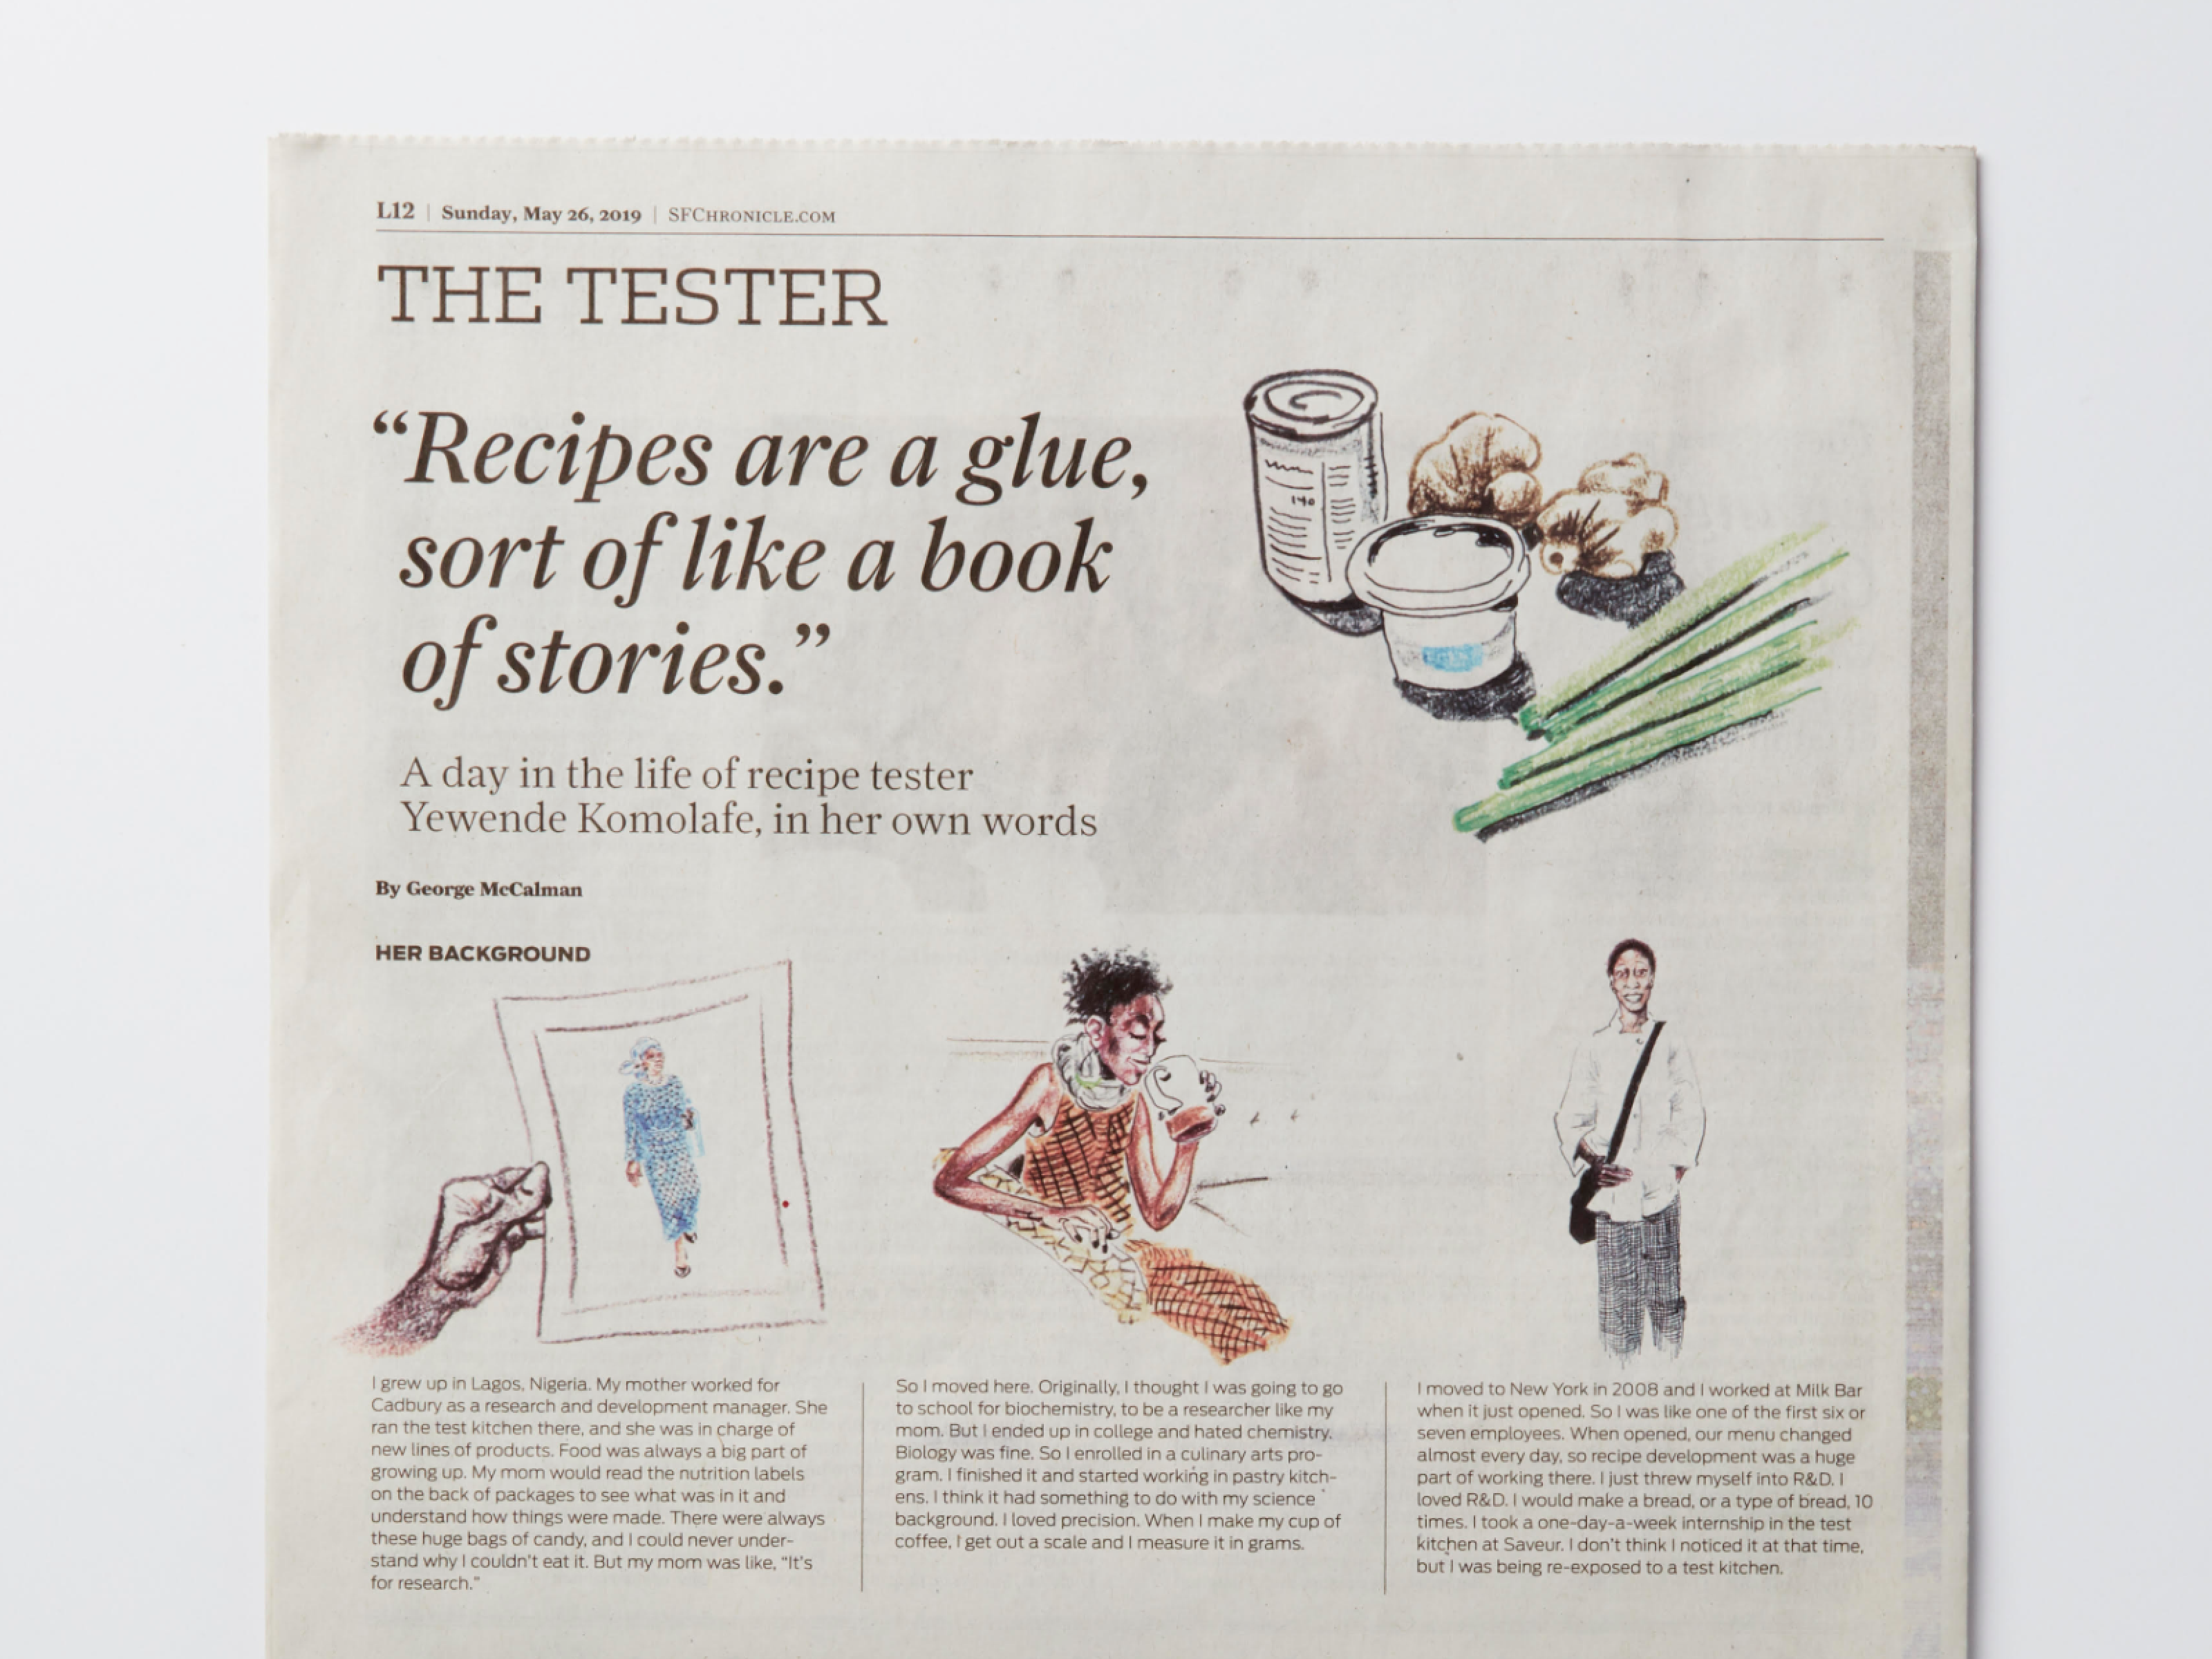 """Illustrated newspaper interview with the title text """"The tester, a day in the life of recipe tester Yewende Komolafe, in her own words.:"""